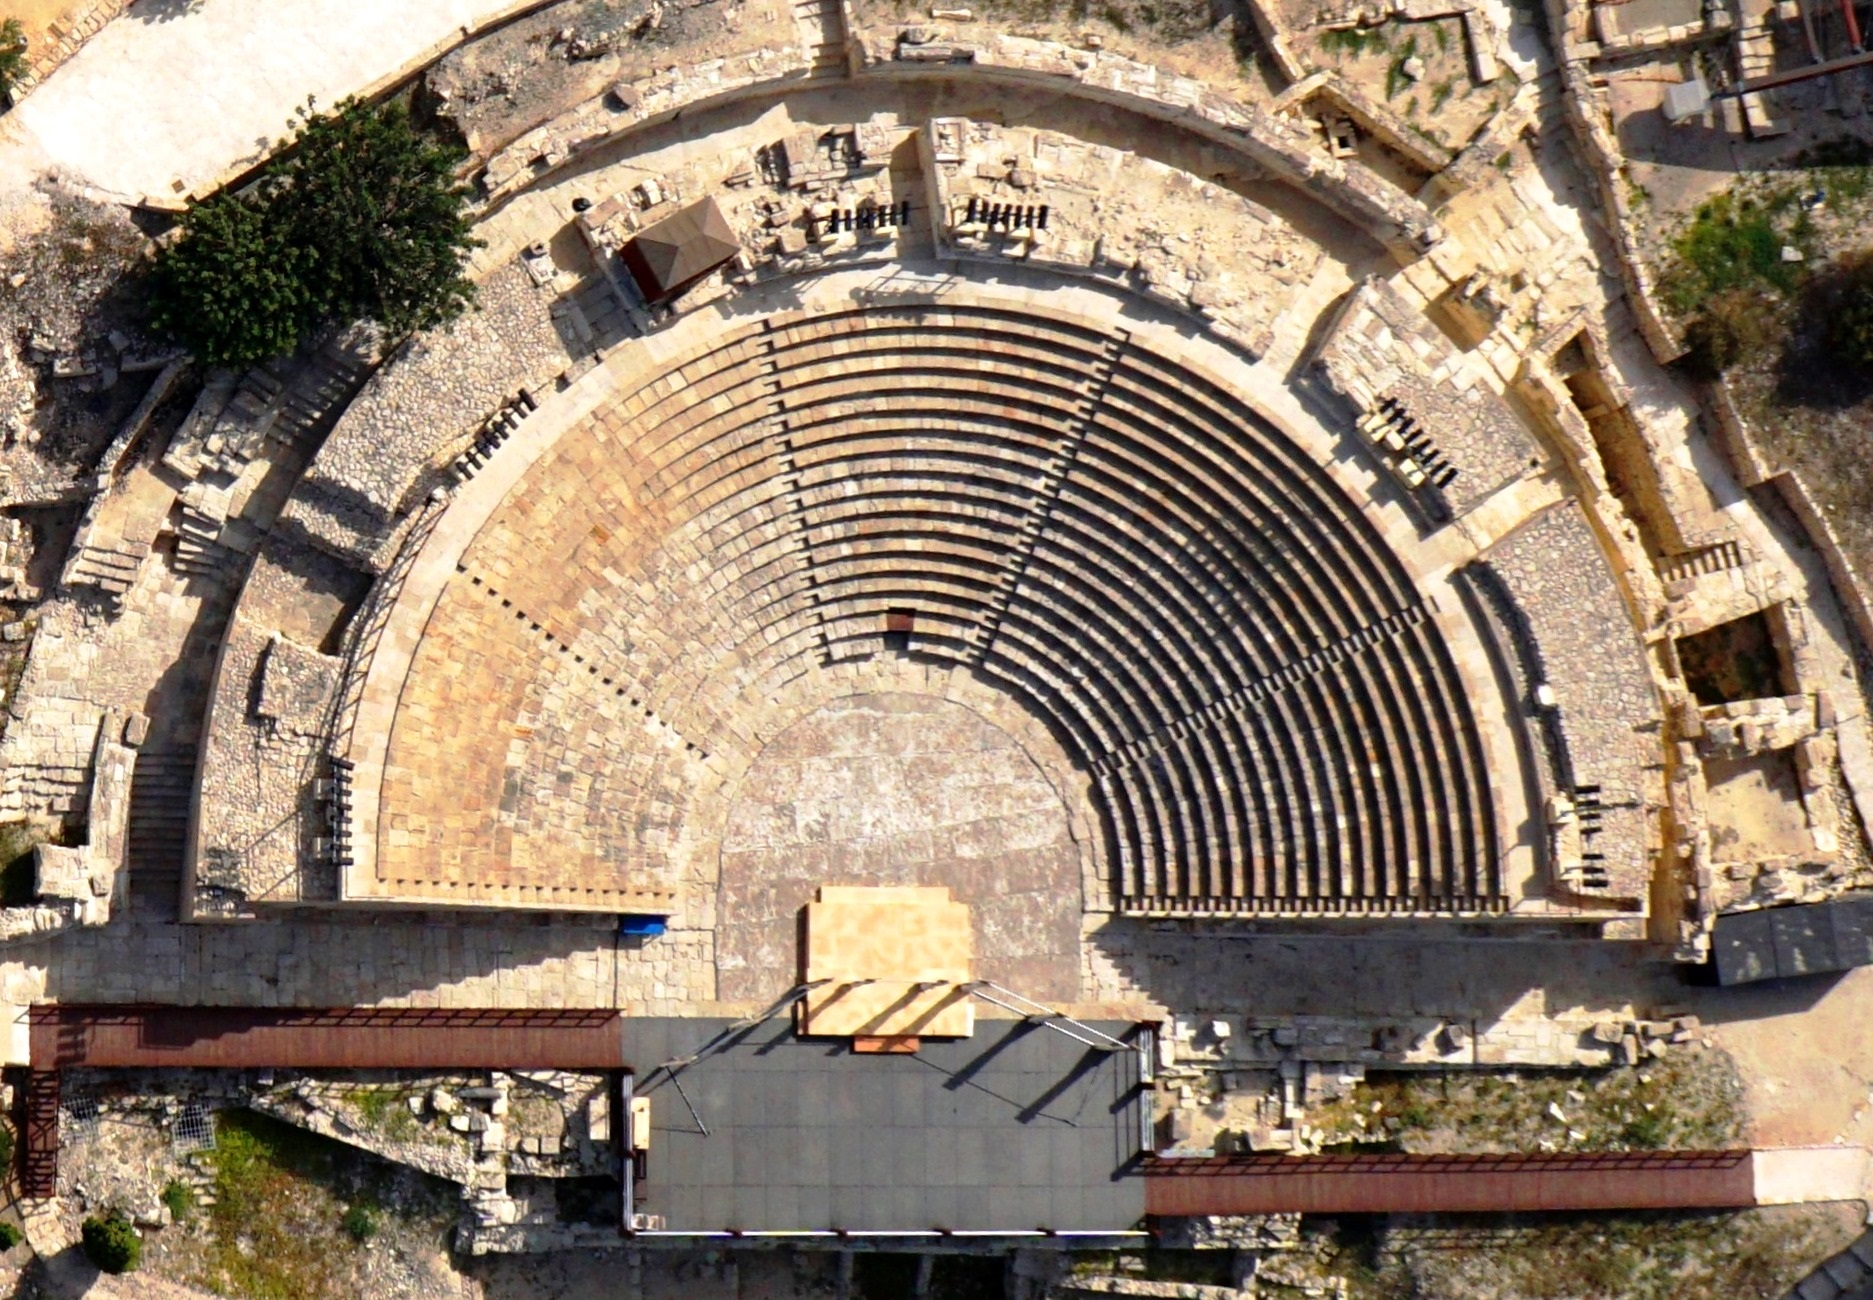 An aerial view of the amphitheatre